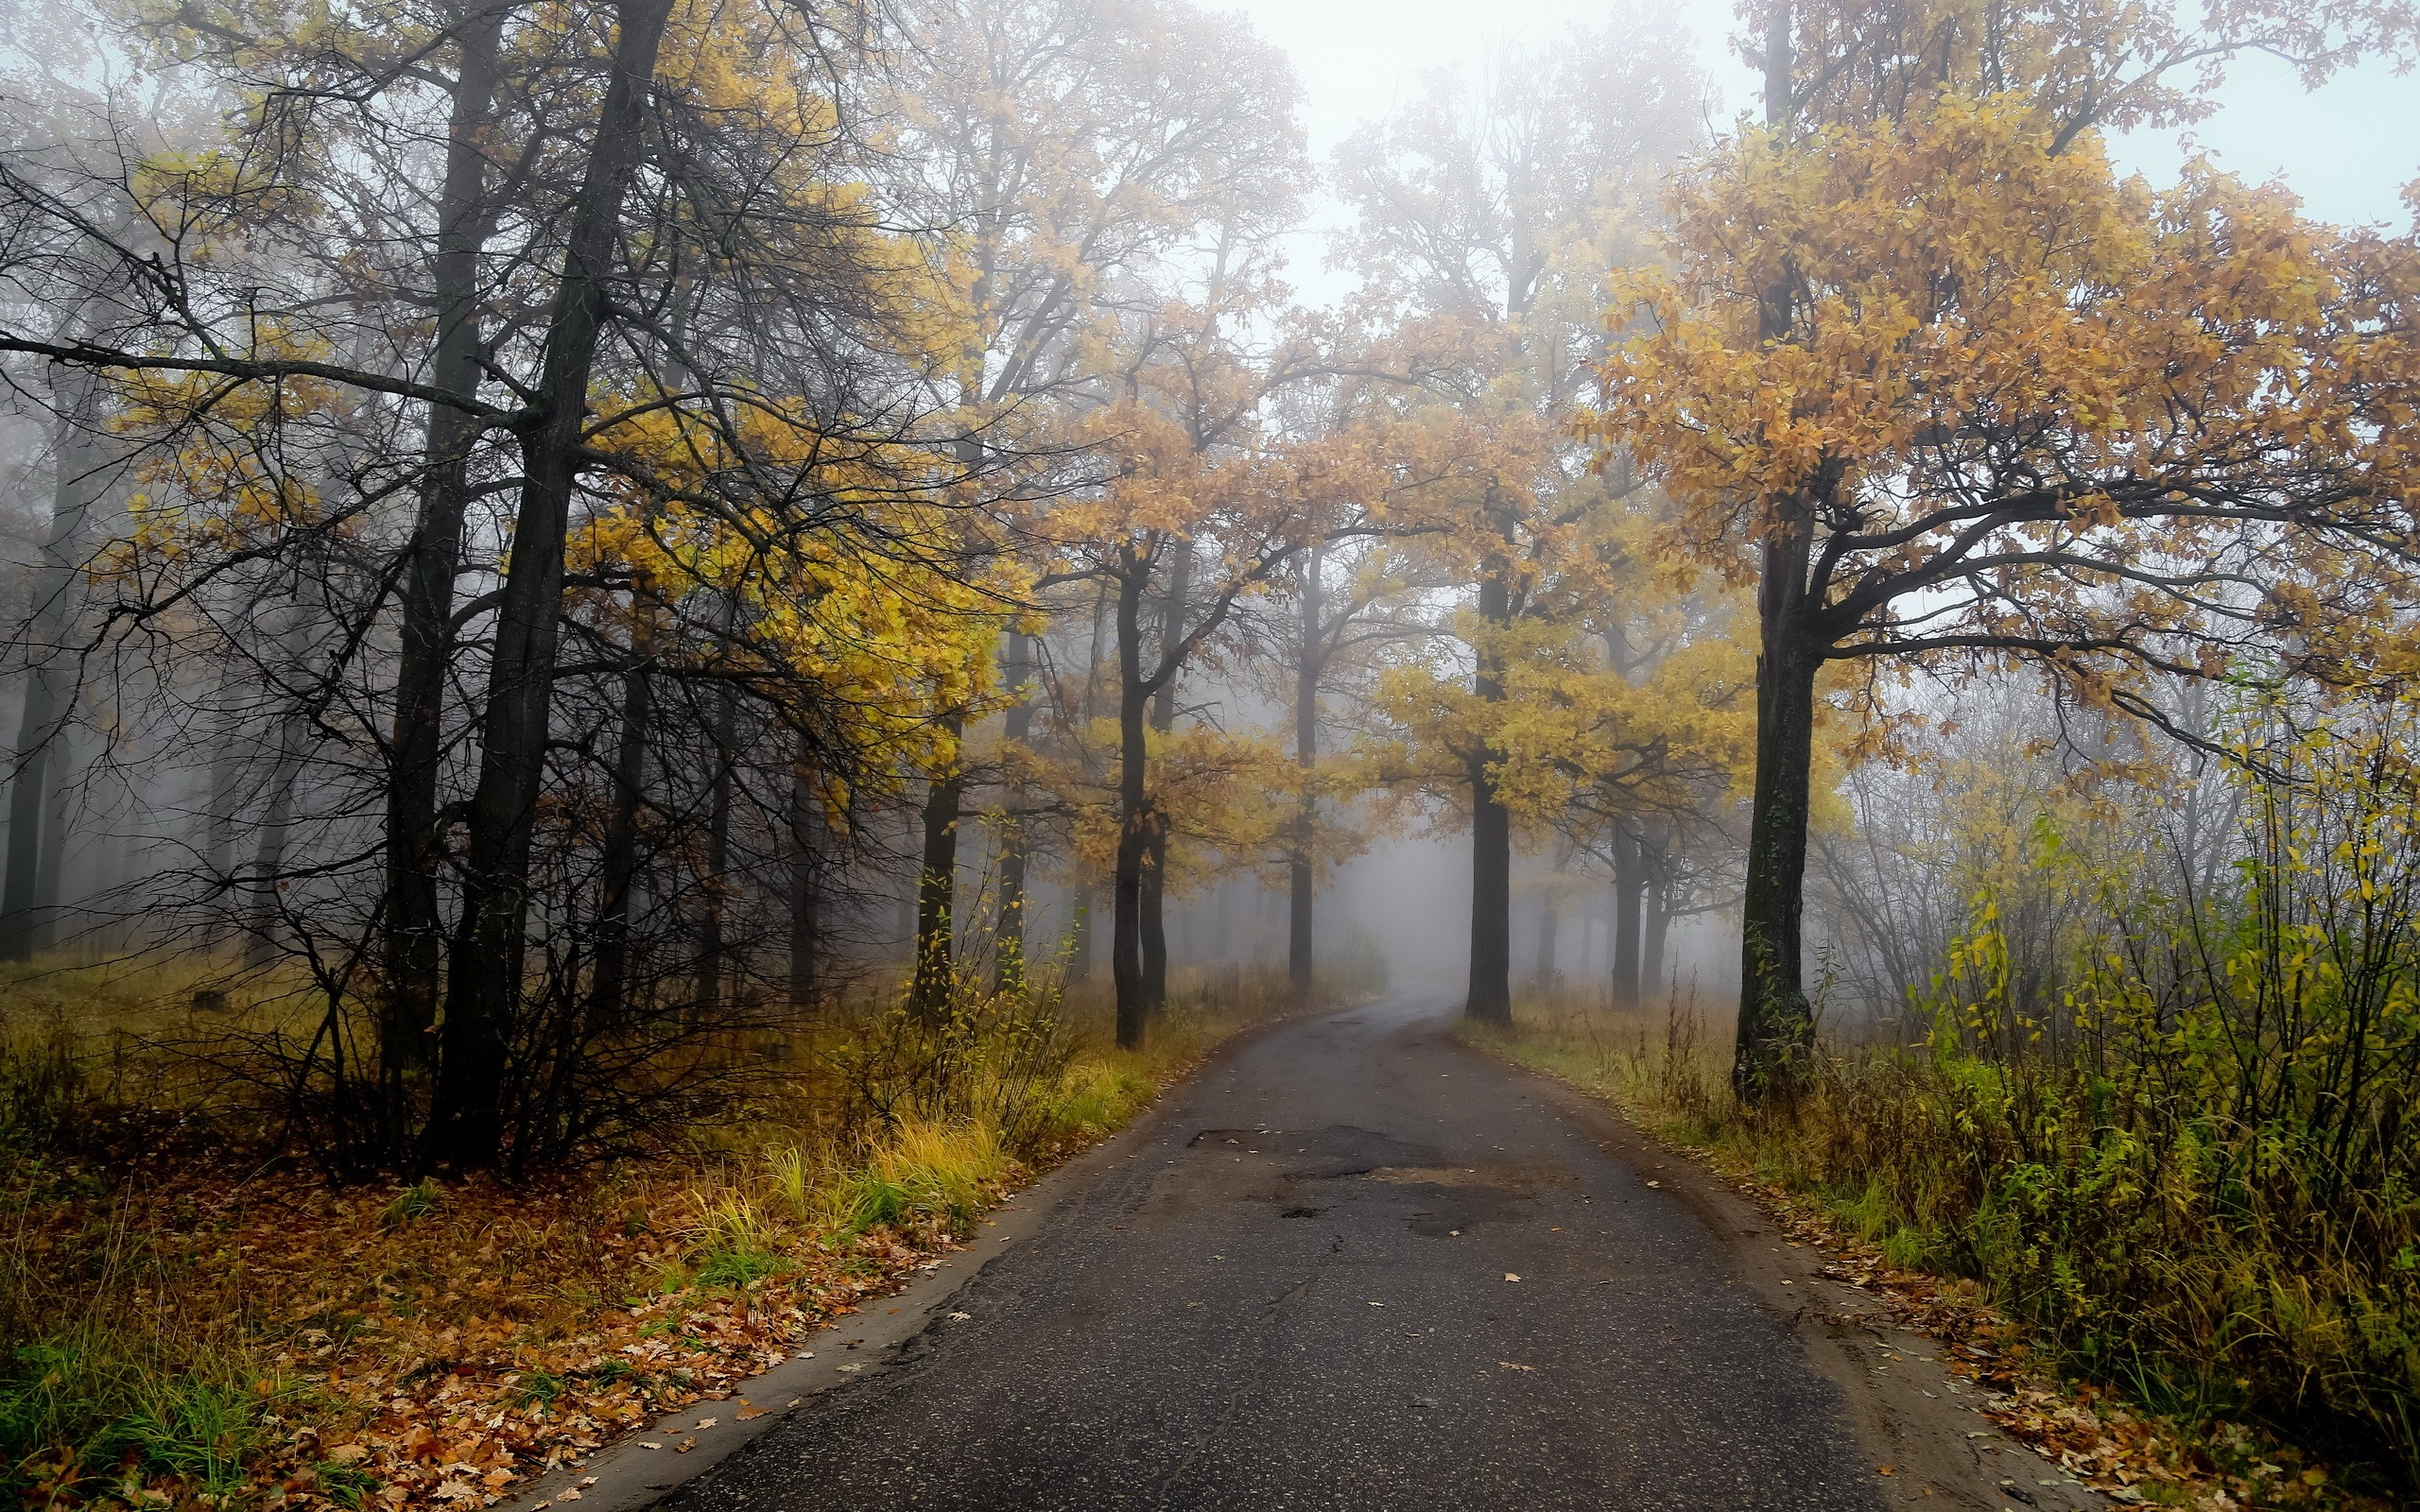 Hd Fall Painting Wallpapers Morning Road Forest Autumn Fog Wallpaper Nature And